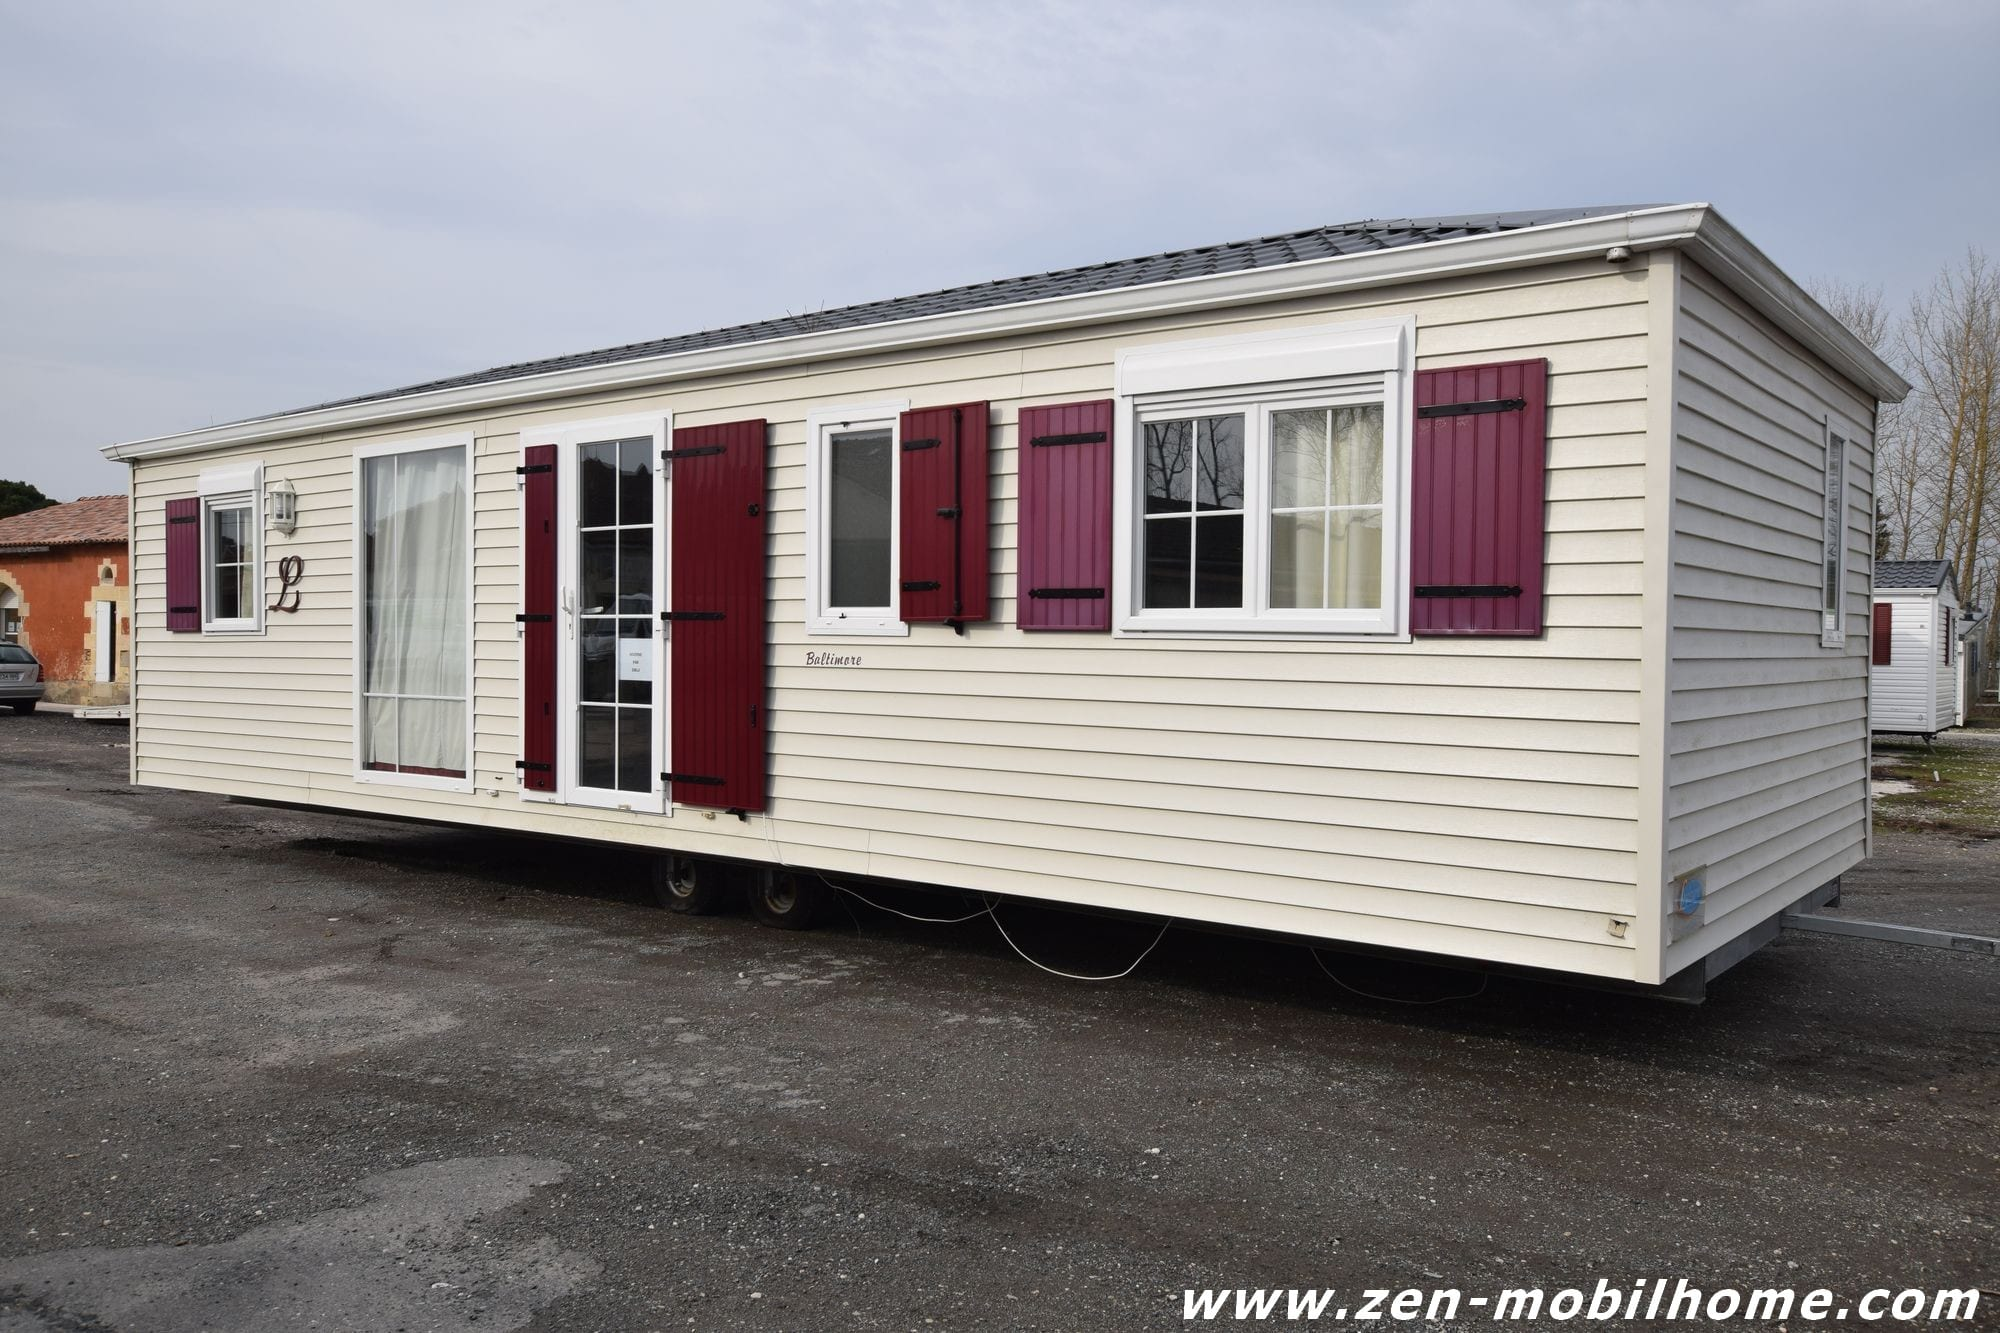 louisiane baltimore mobil home d 39 occasion 27 000 zen mobil homes. Black Bedroom Furniture Sets. Home Design Ideas